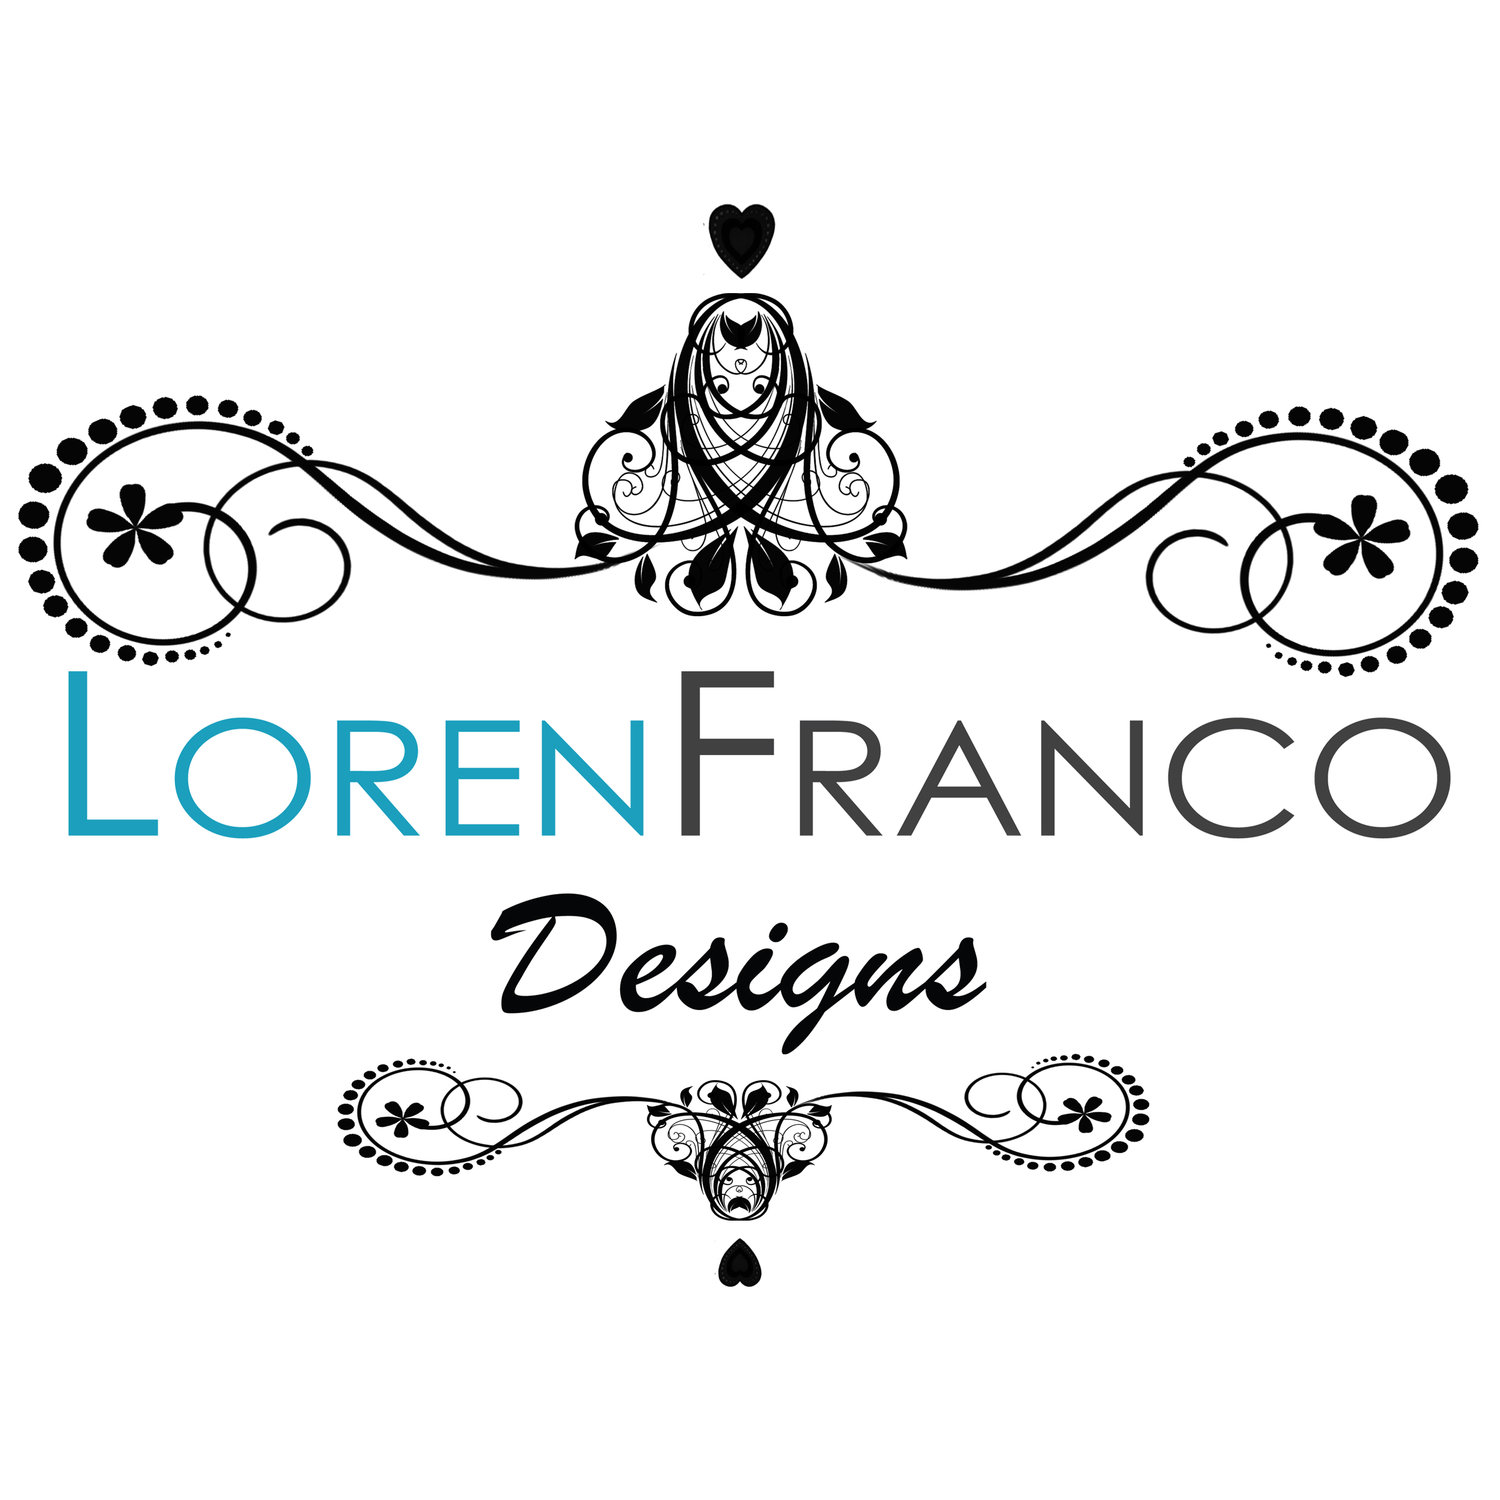 Loren Franco Designs